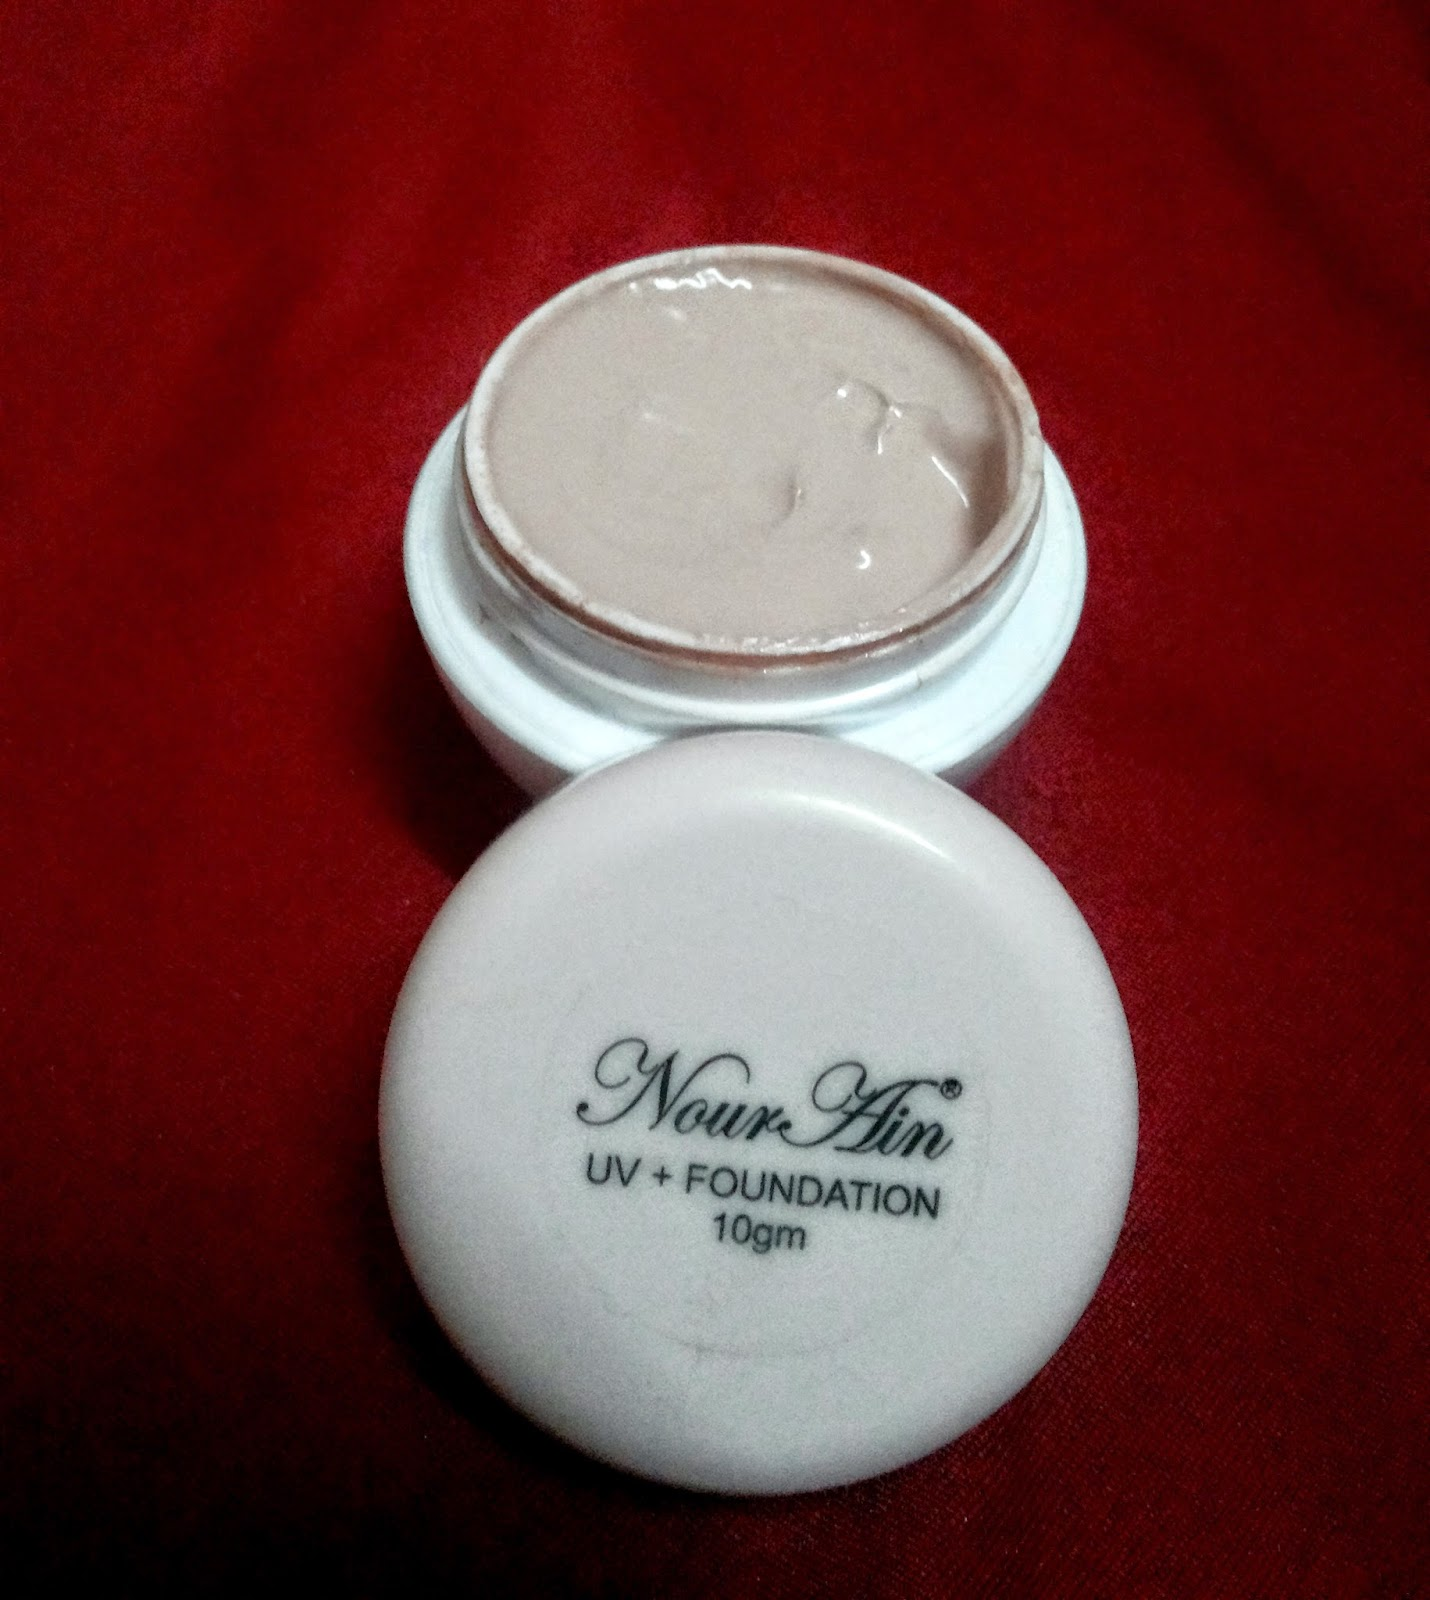 UV foundation nourain